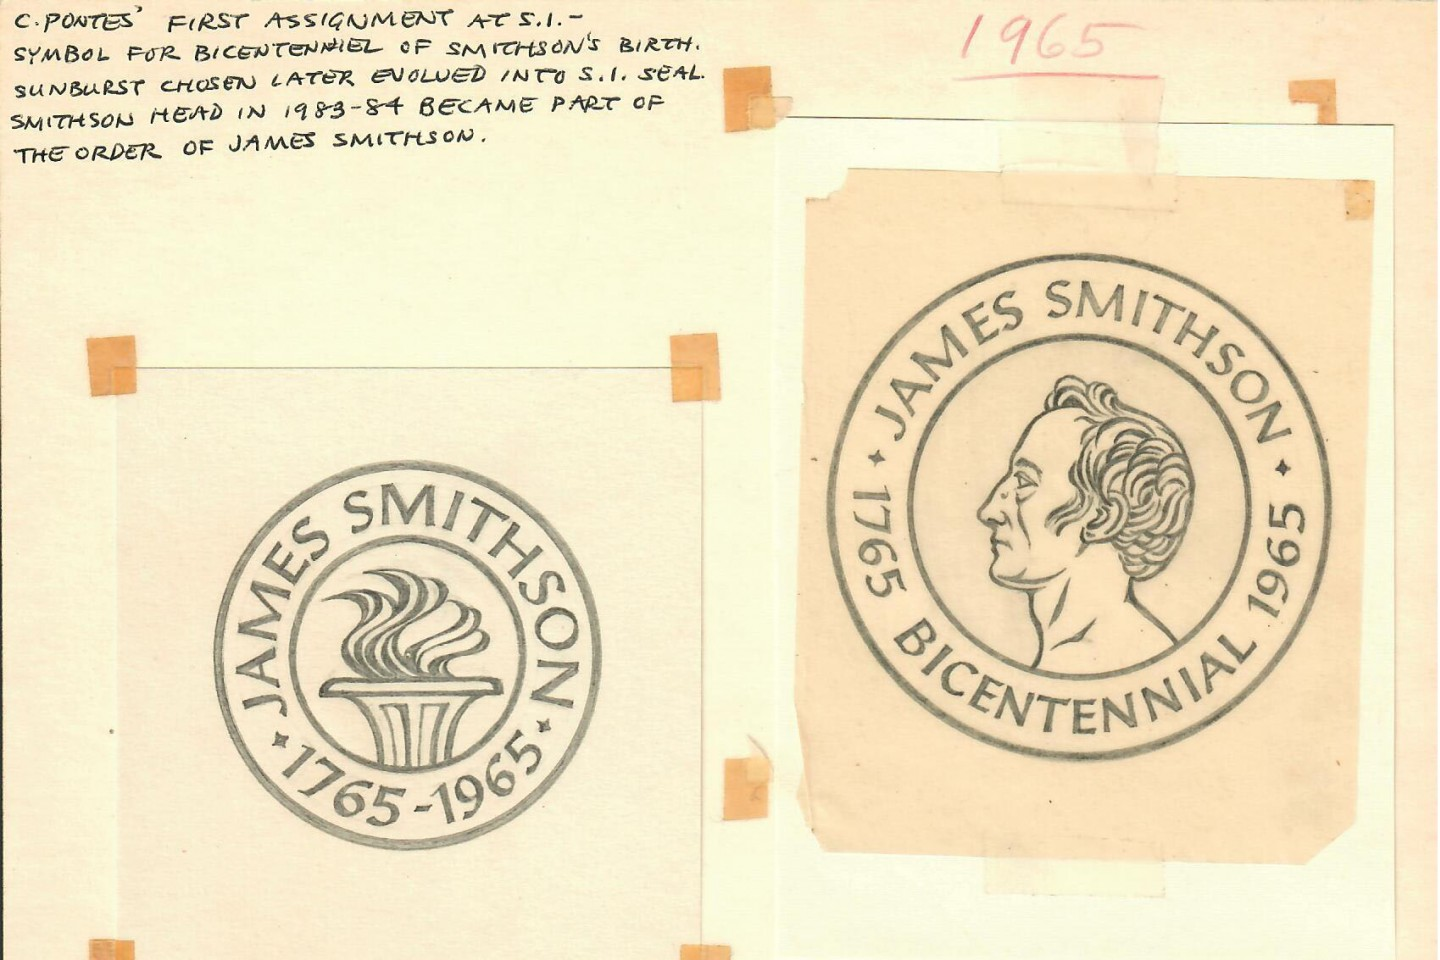 Original drawings and notes by Crimilda Pontes, 1965, Smithsonian Institution Archives, Accession 89-024, Box 4